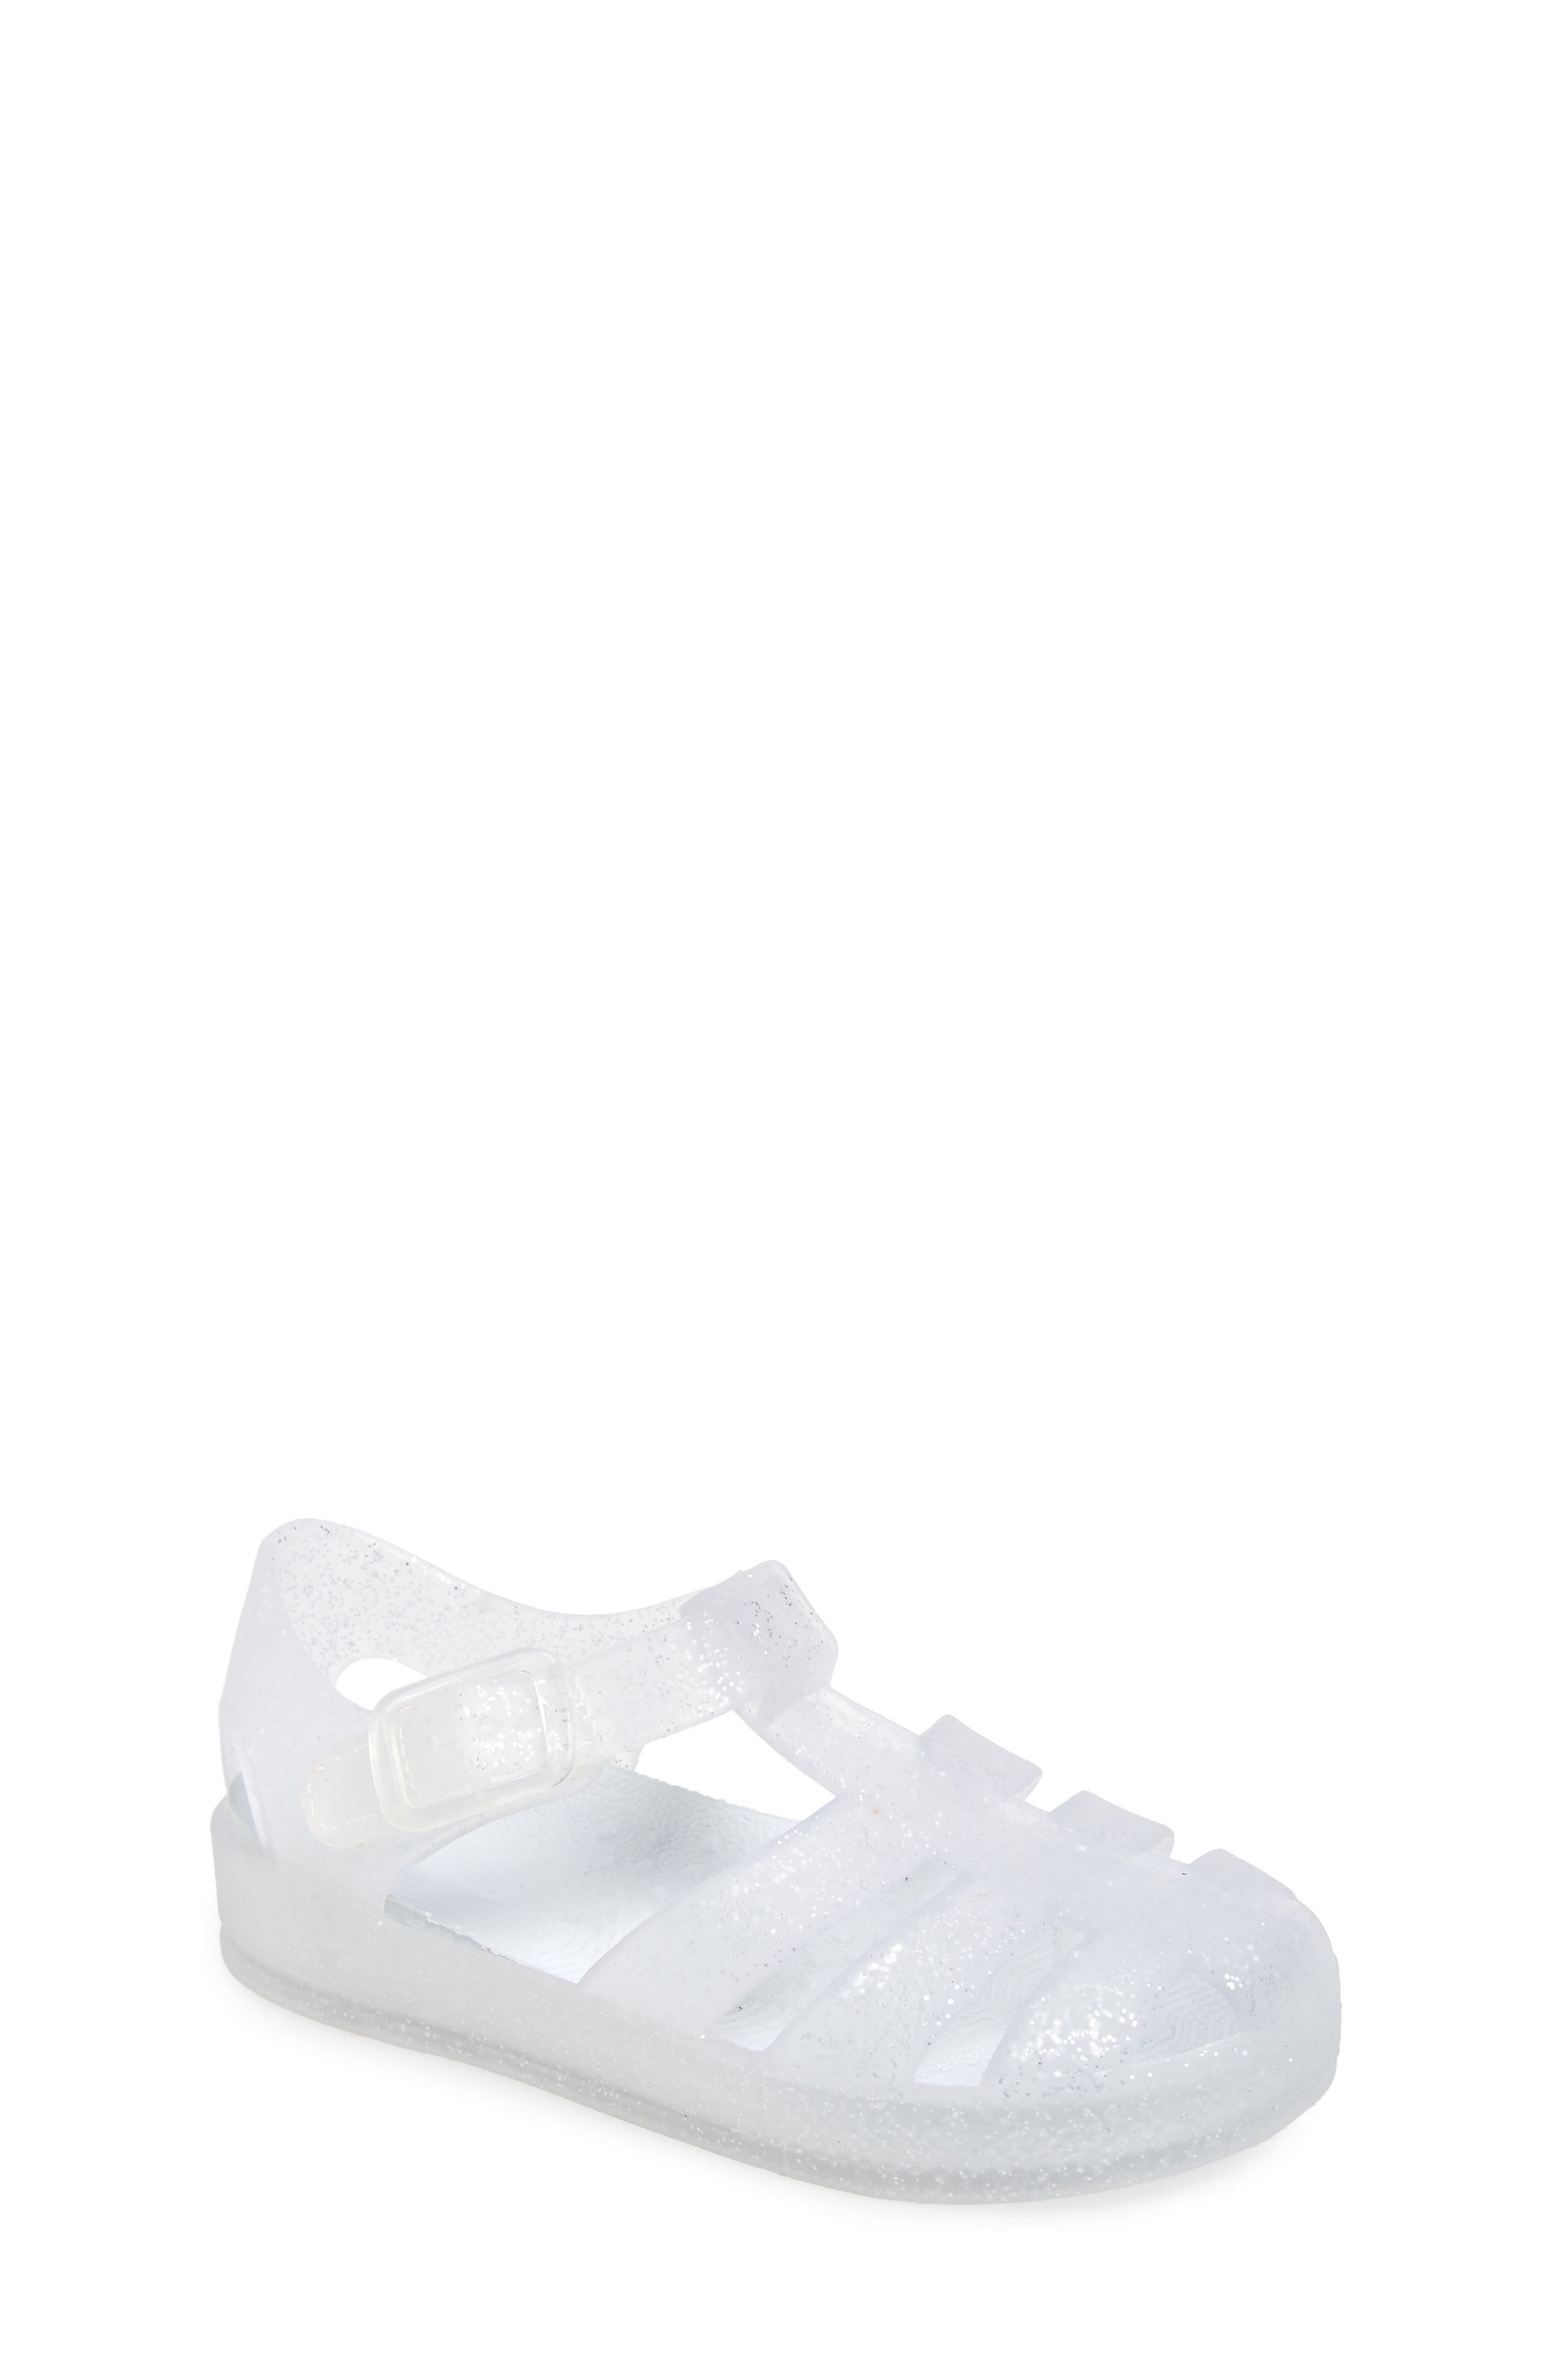 This wear-everywhere jelly shoe brings sweet nostalgia to your little one\\\'s summery look. Style Name: Tucker + Tate Fisherman Jelly Sandal (Walker & Toddler). Style Number: 5976259 1. Available in stores.